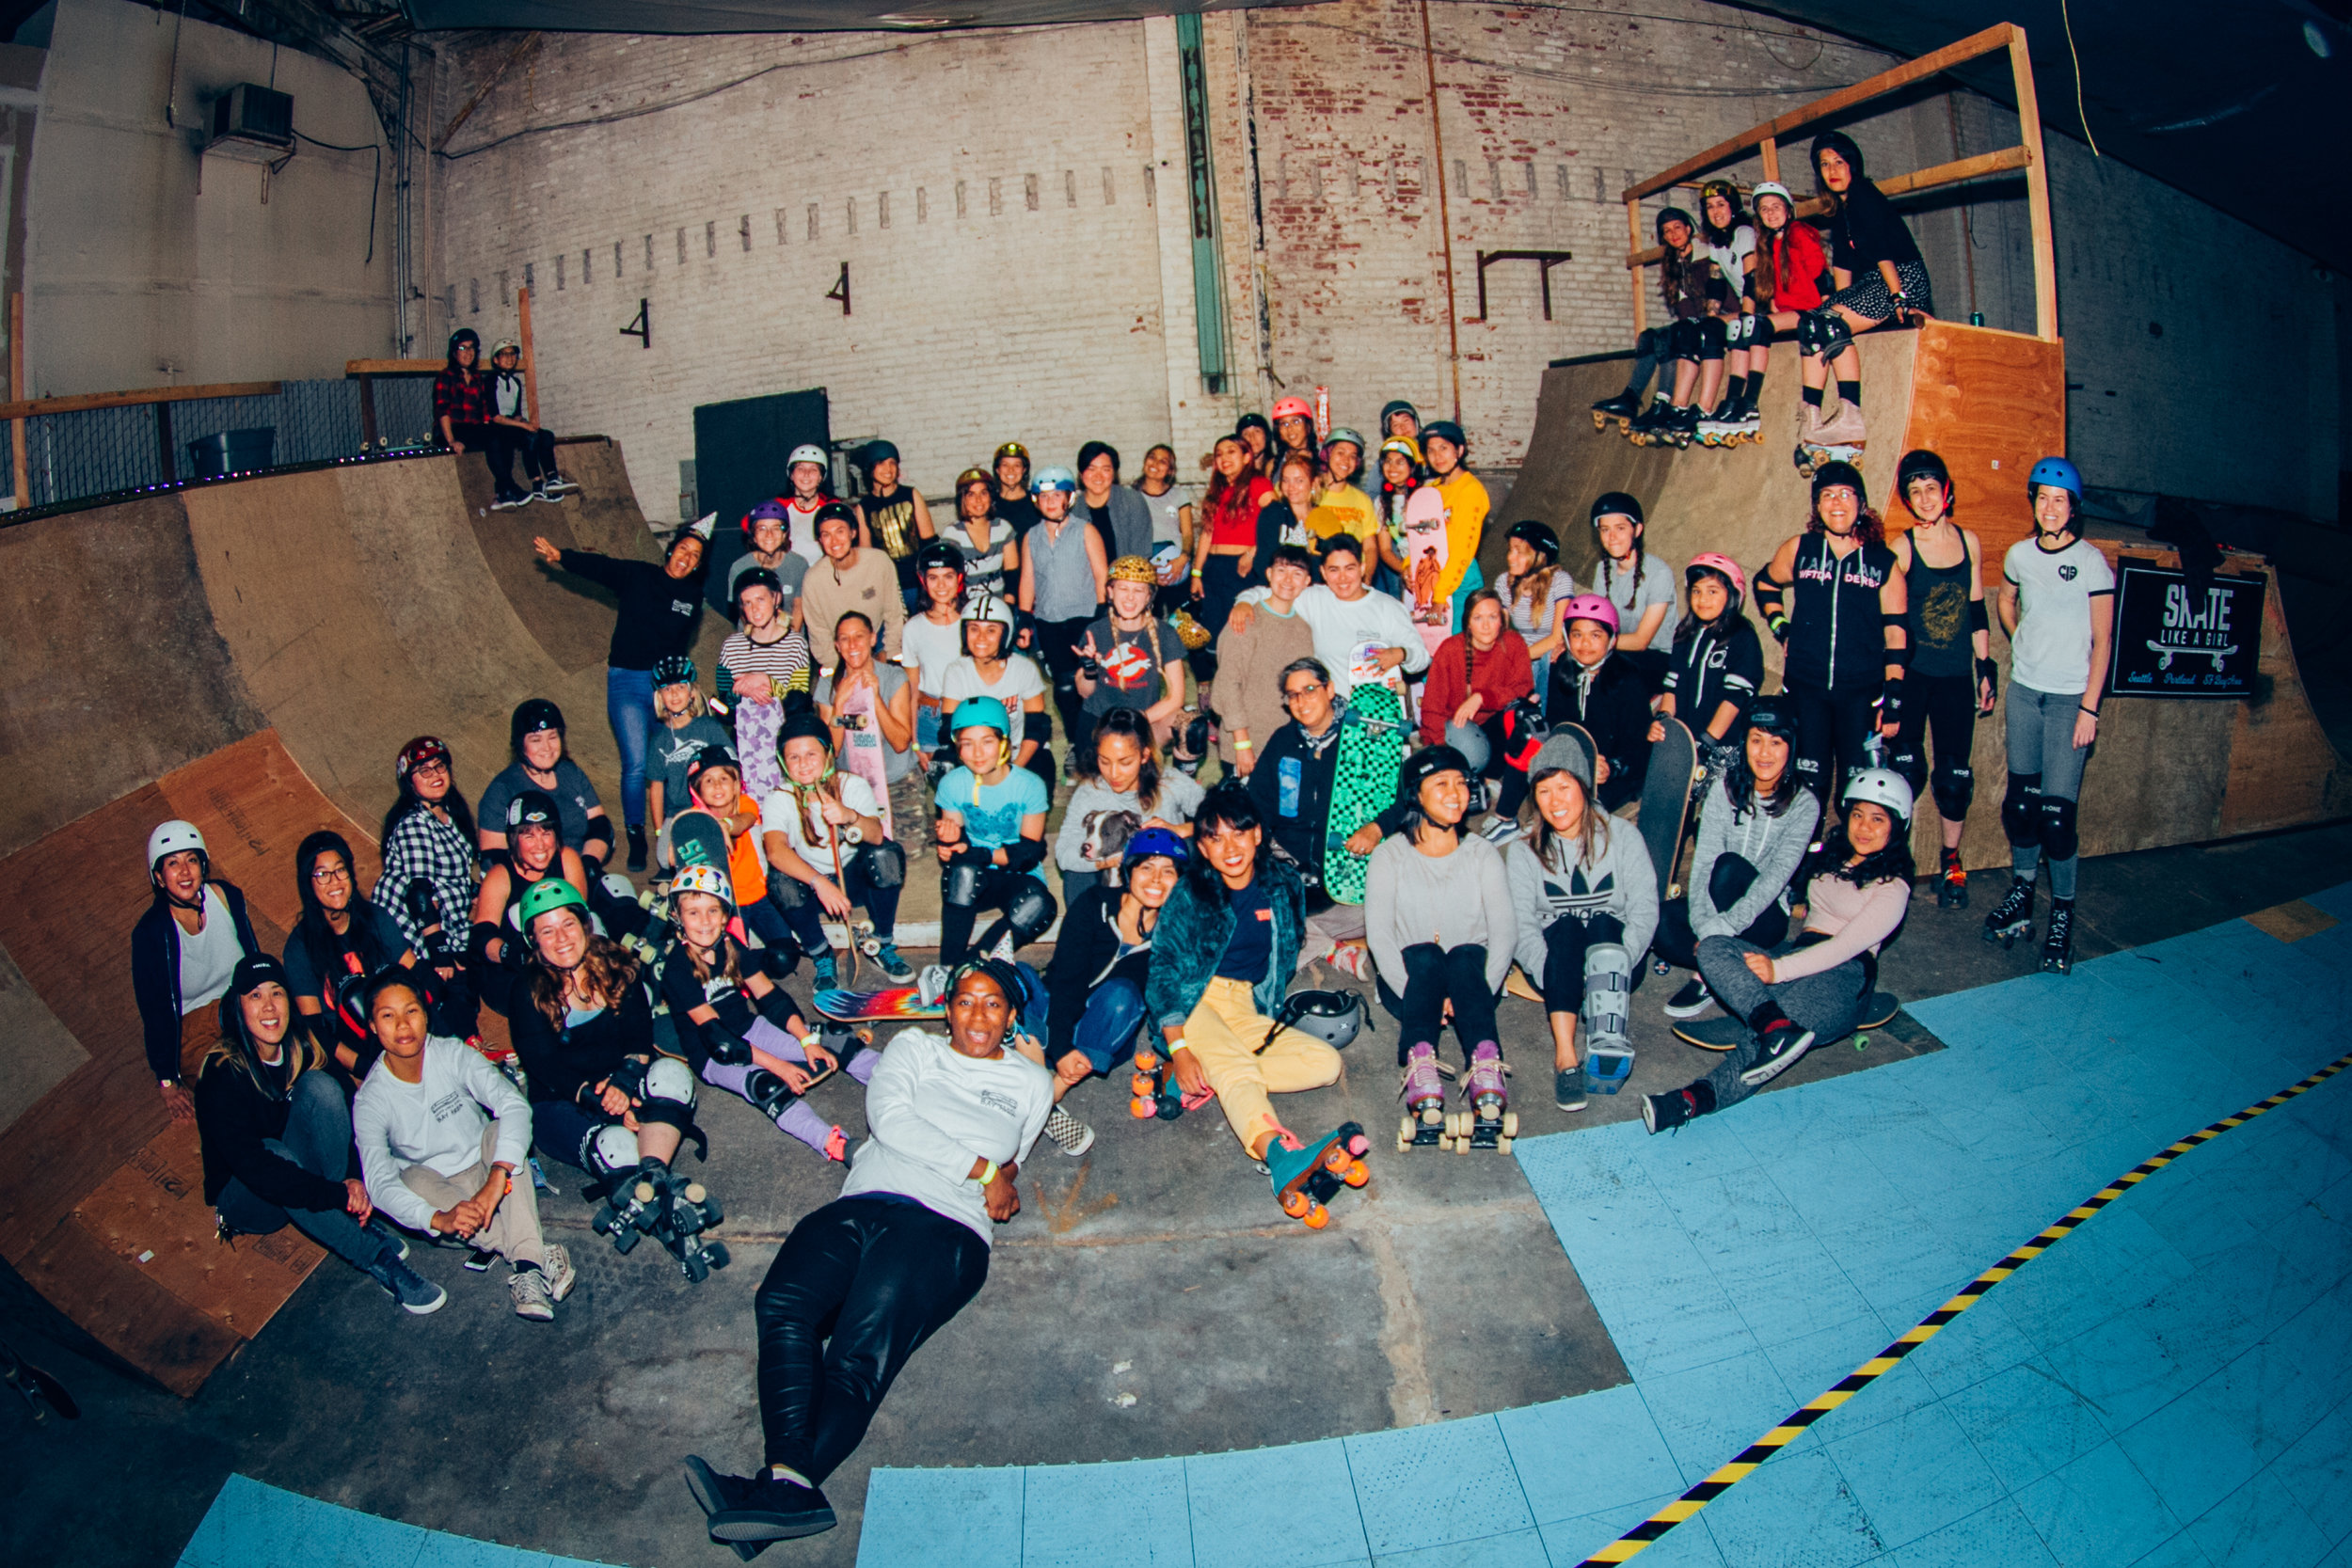 Skate Like a Girl - Our mission is to create an inclusive community by promoting confidence, leadership, and social justice through the sport of skateboarding. Visit their site to take part in upcoming activities and camps.PC: Kim Woozy